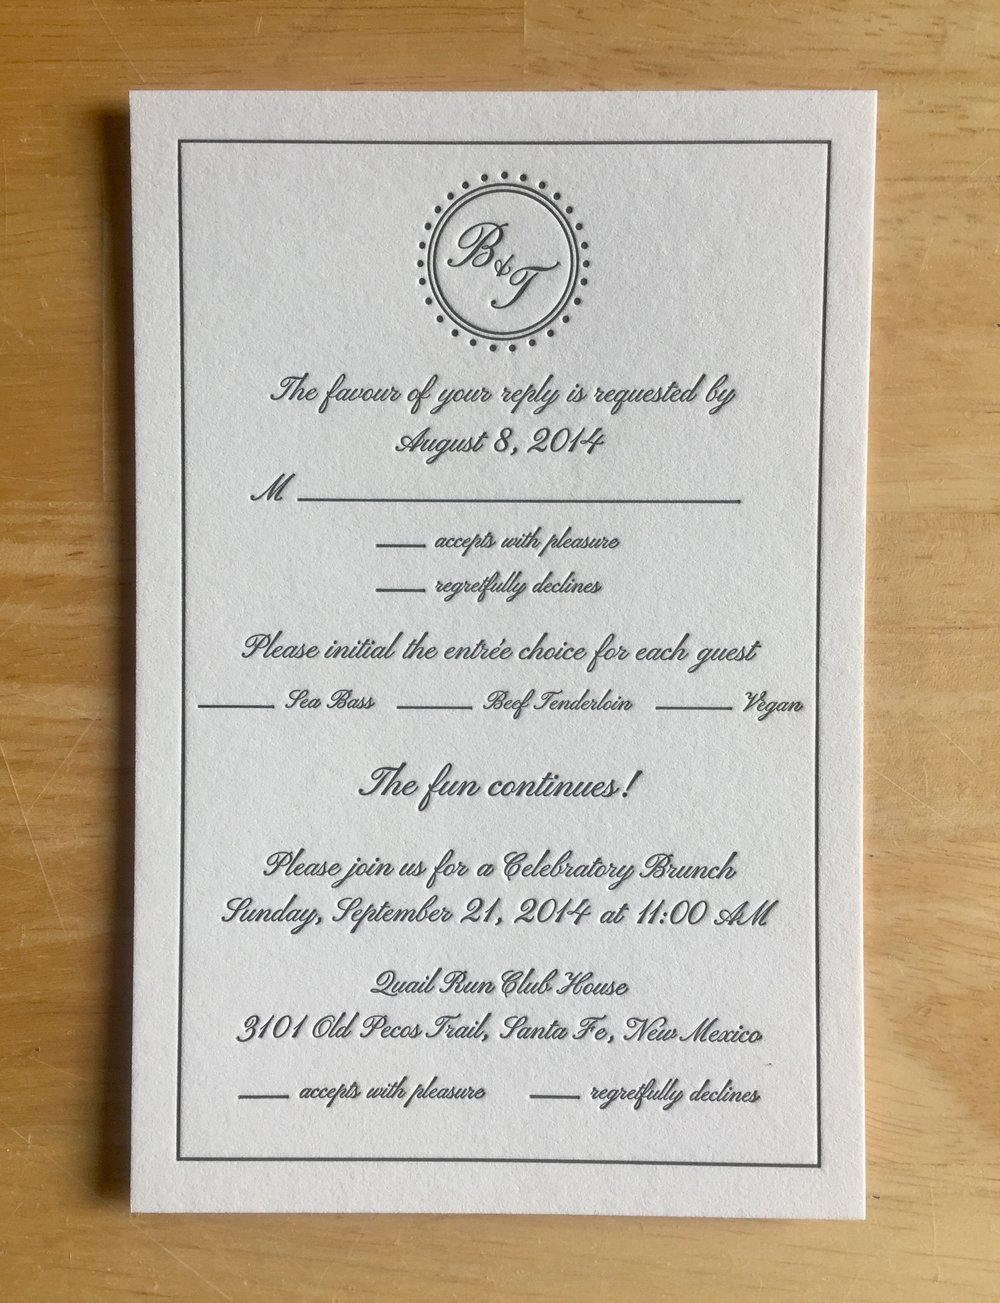 karns-wedding-invite-03